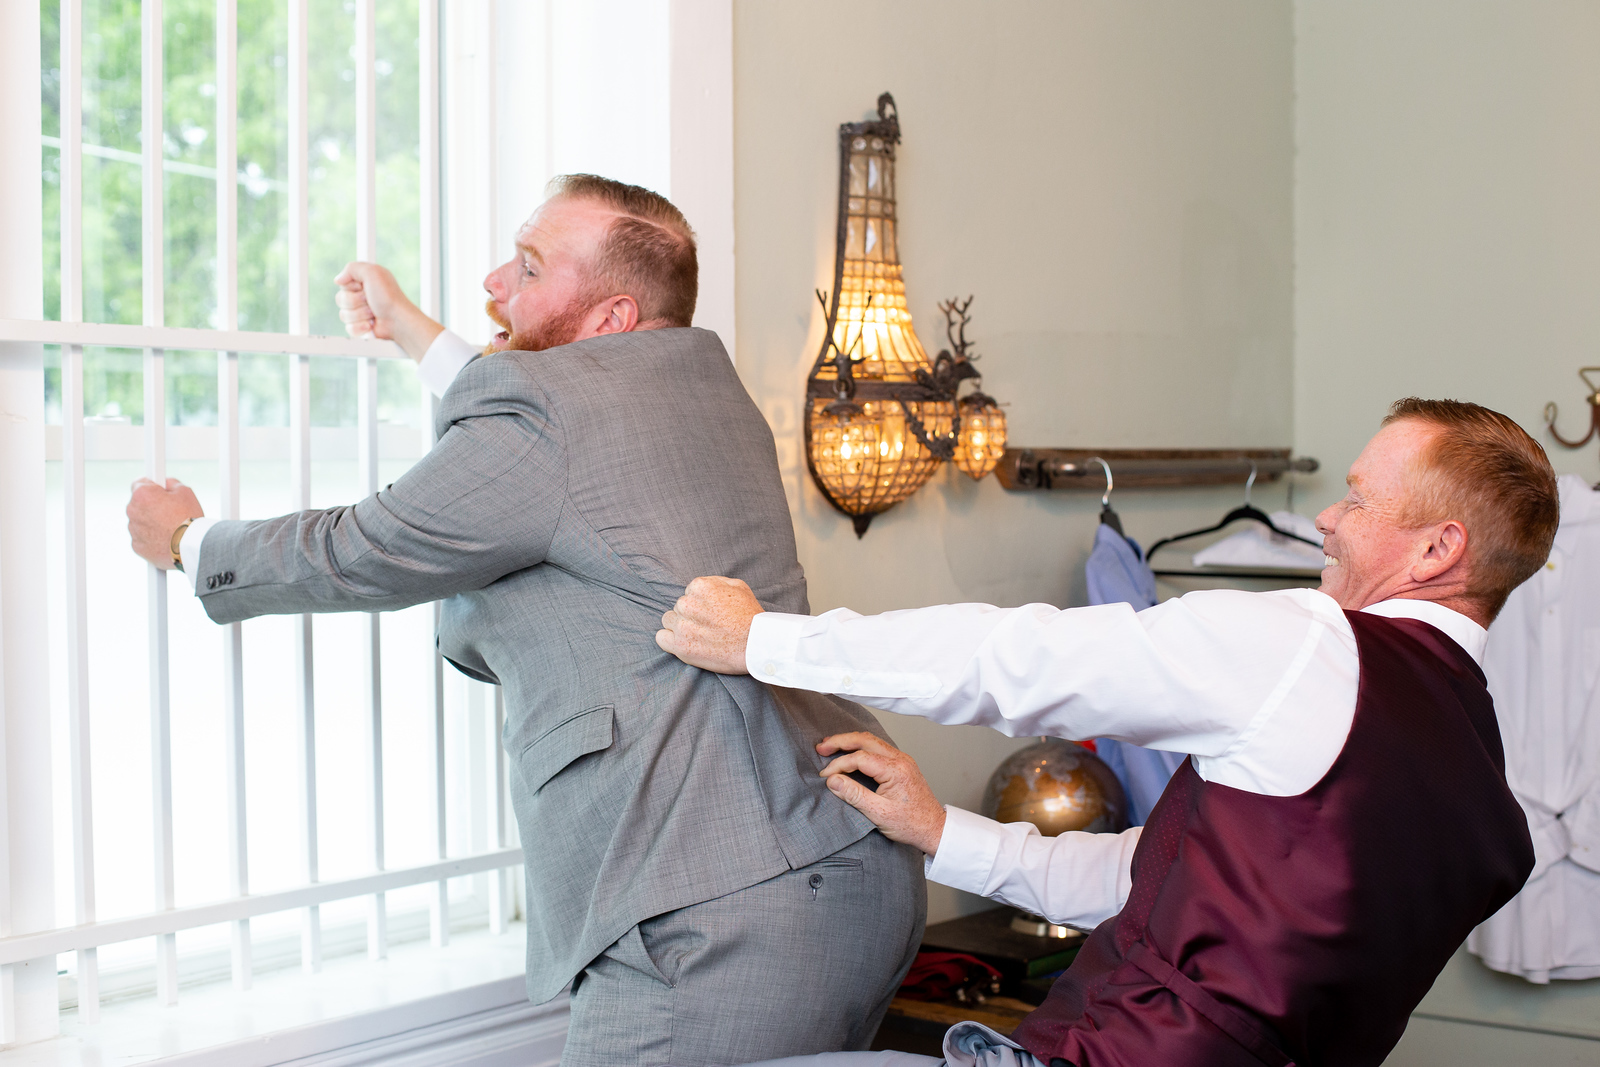 groom jokingly trying to crawl out of a window on his wedding day as one of his groomsmen is pulling him back in